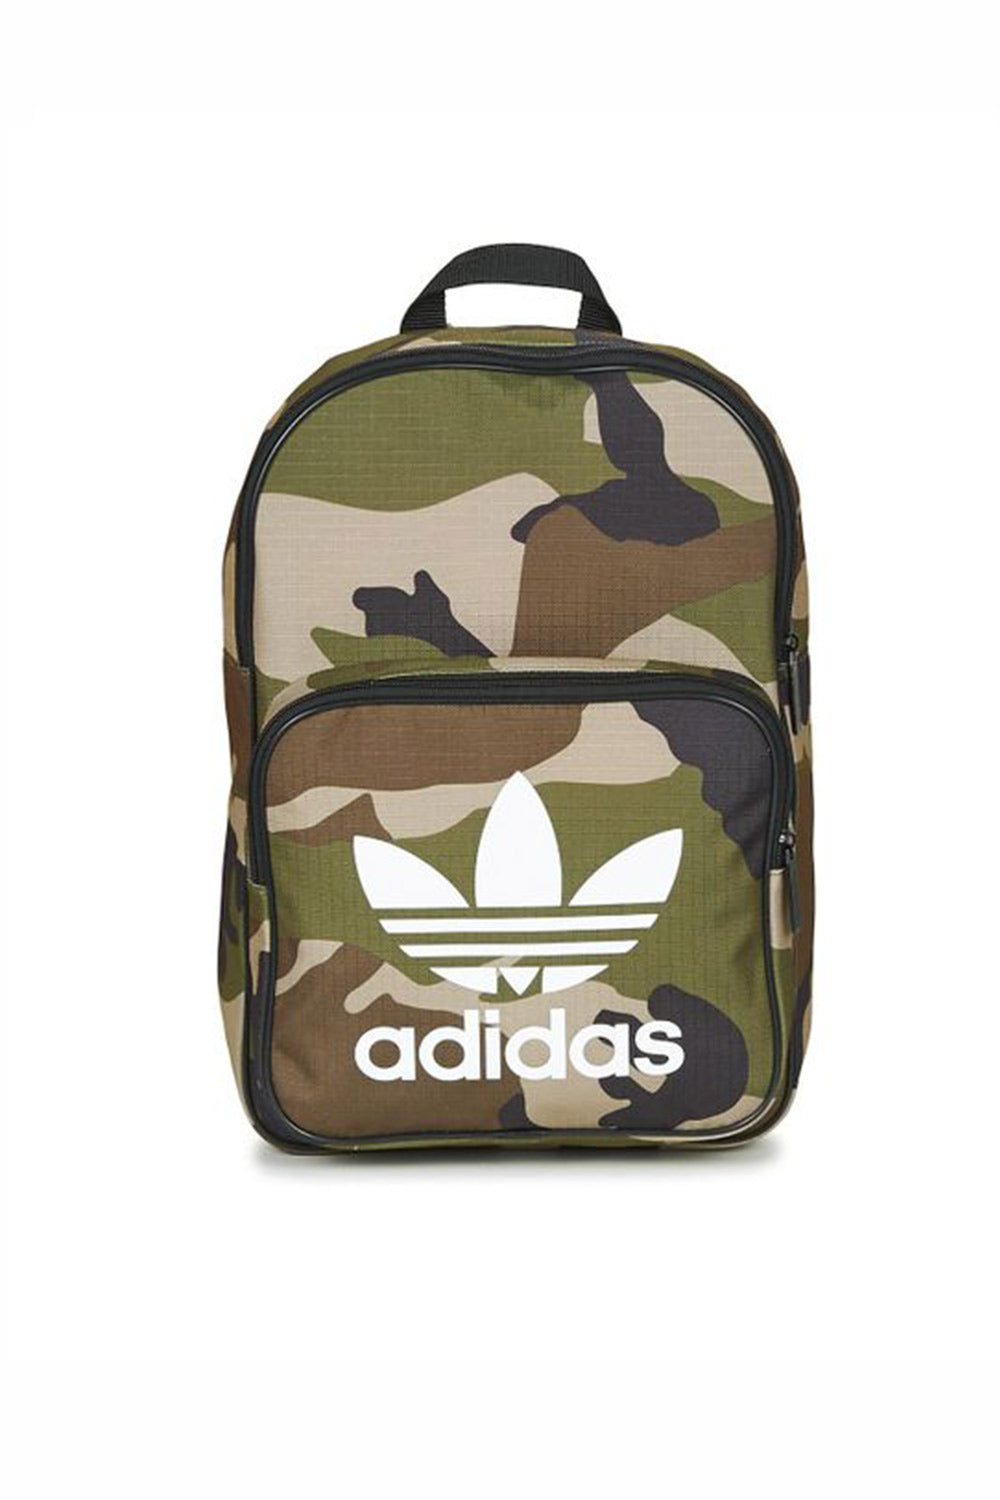 Buy Adidas BP Classic Camo Backpack Online | Buy Adidas Online